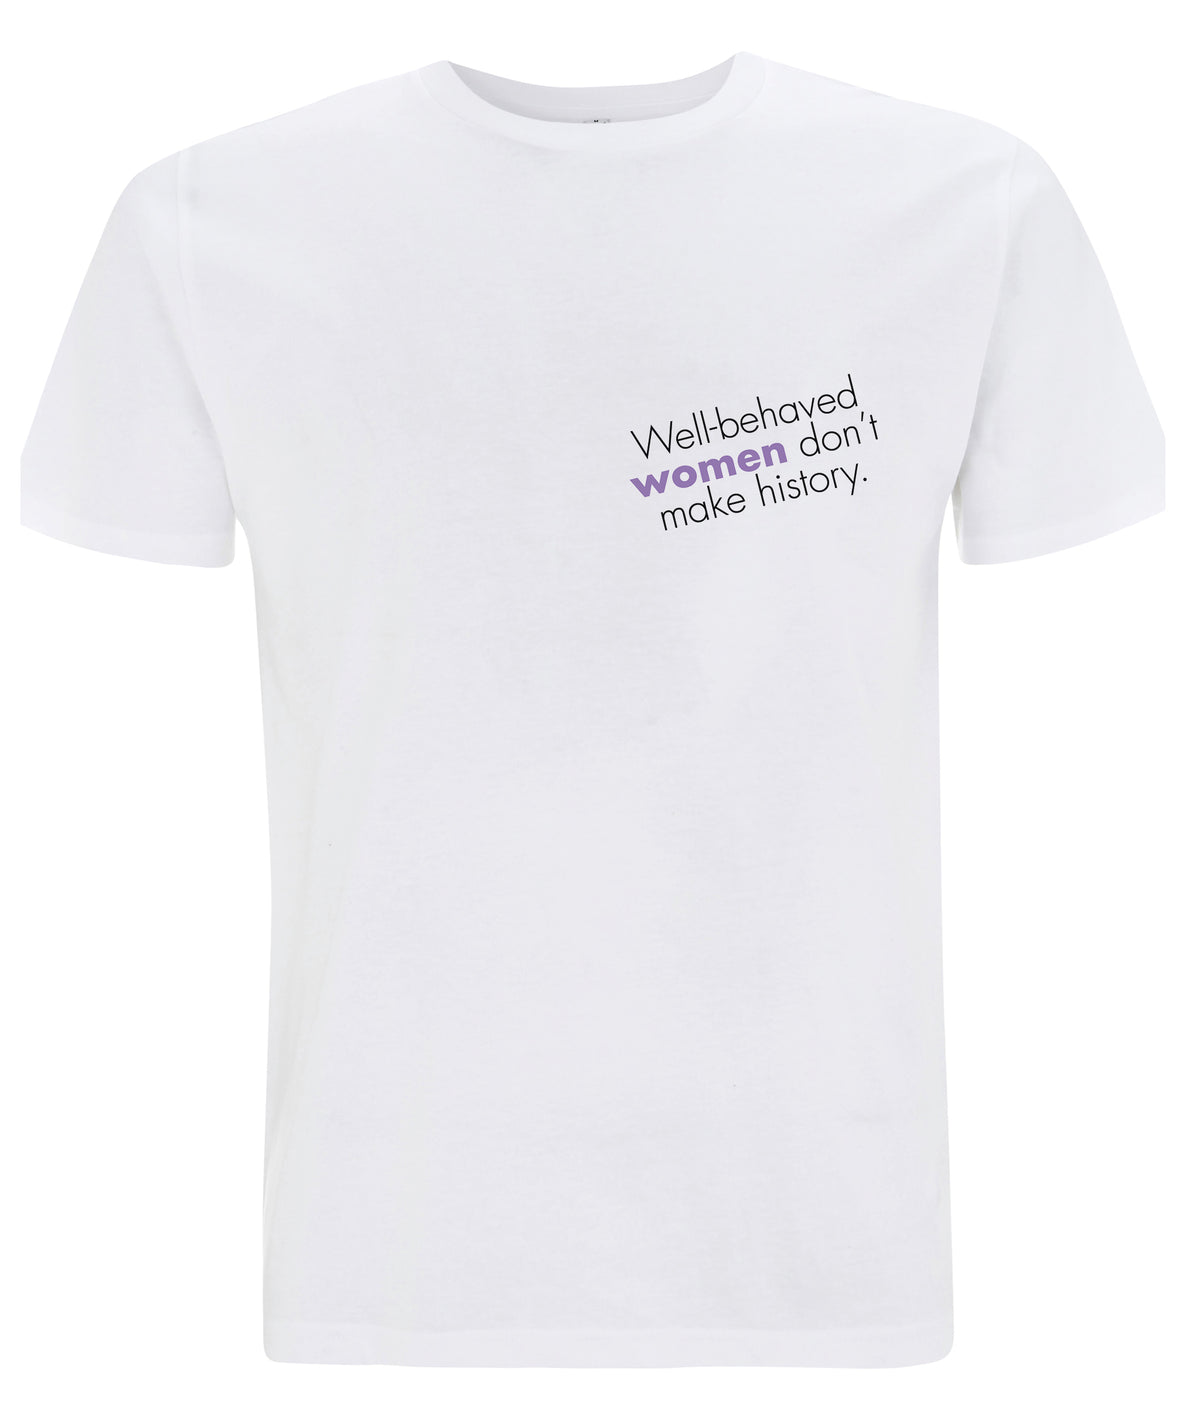 Well Behaved Women Don't Make History Organic Feminist T Shirt White